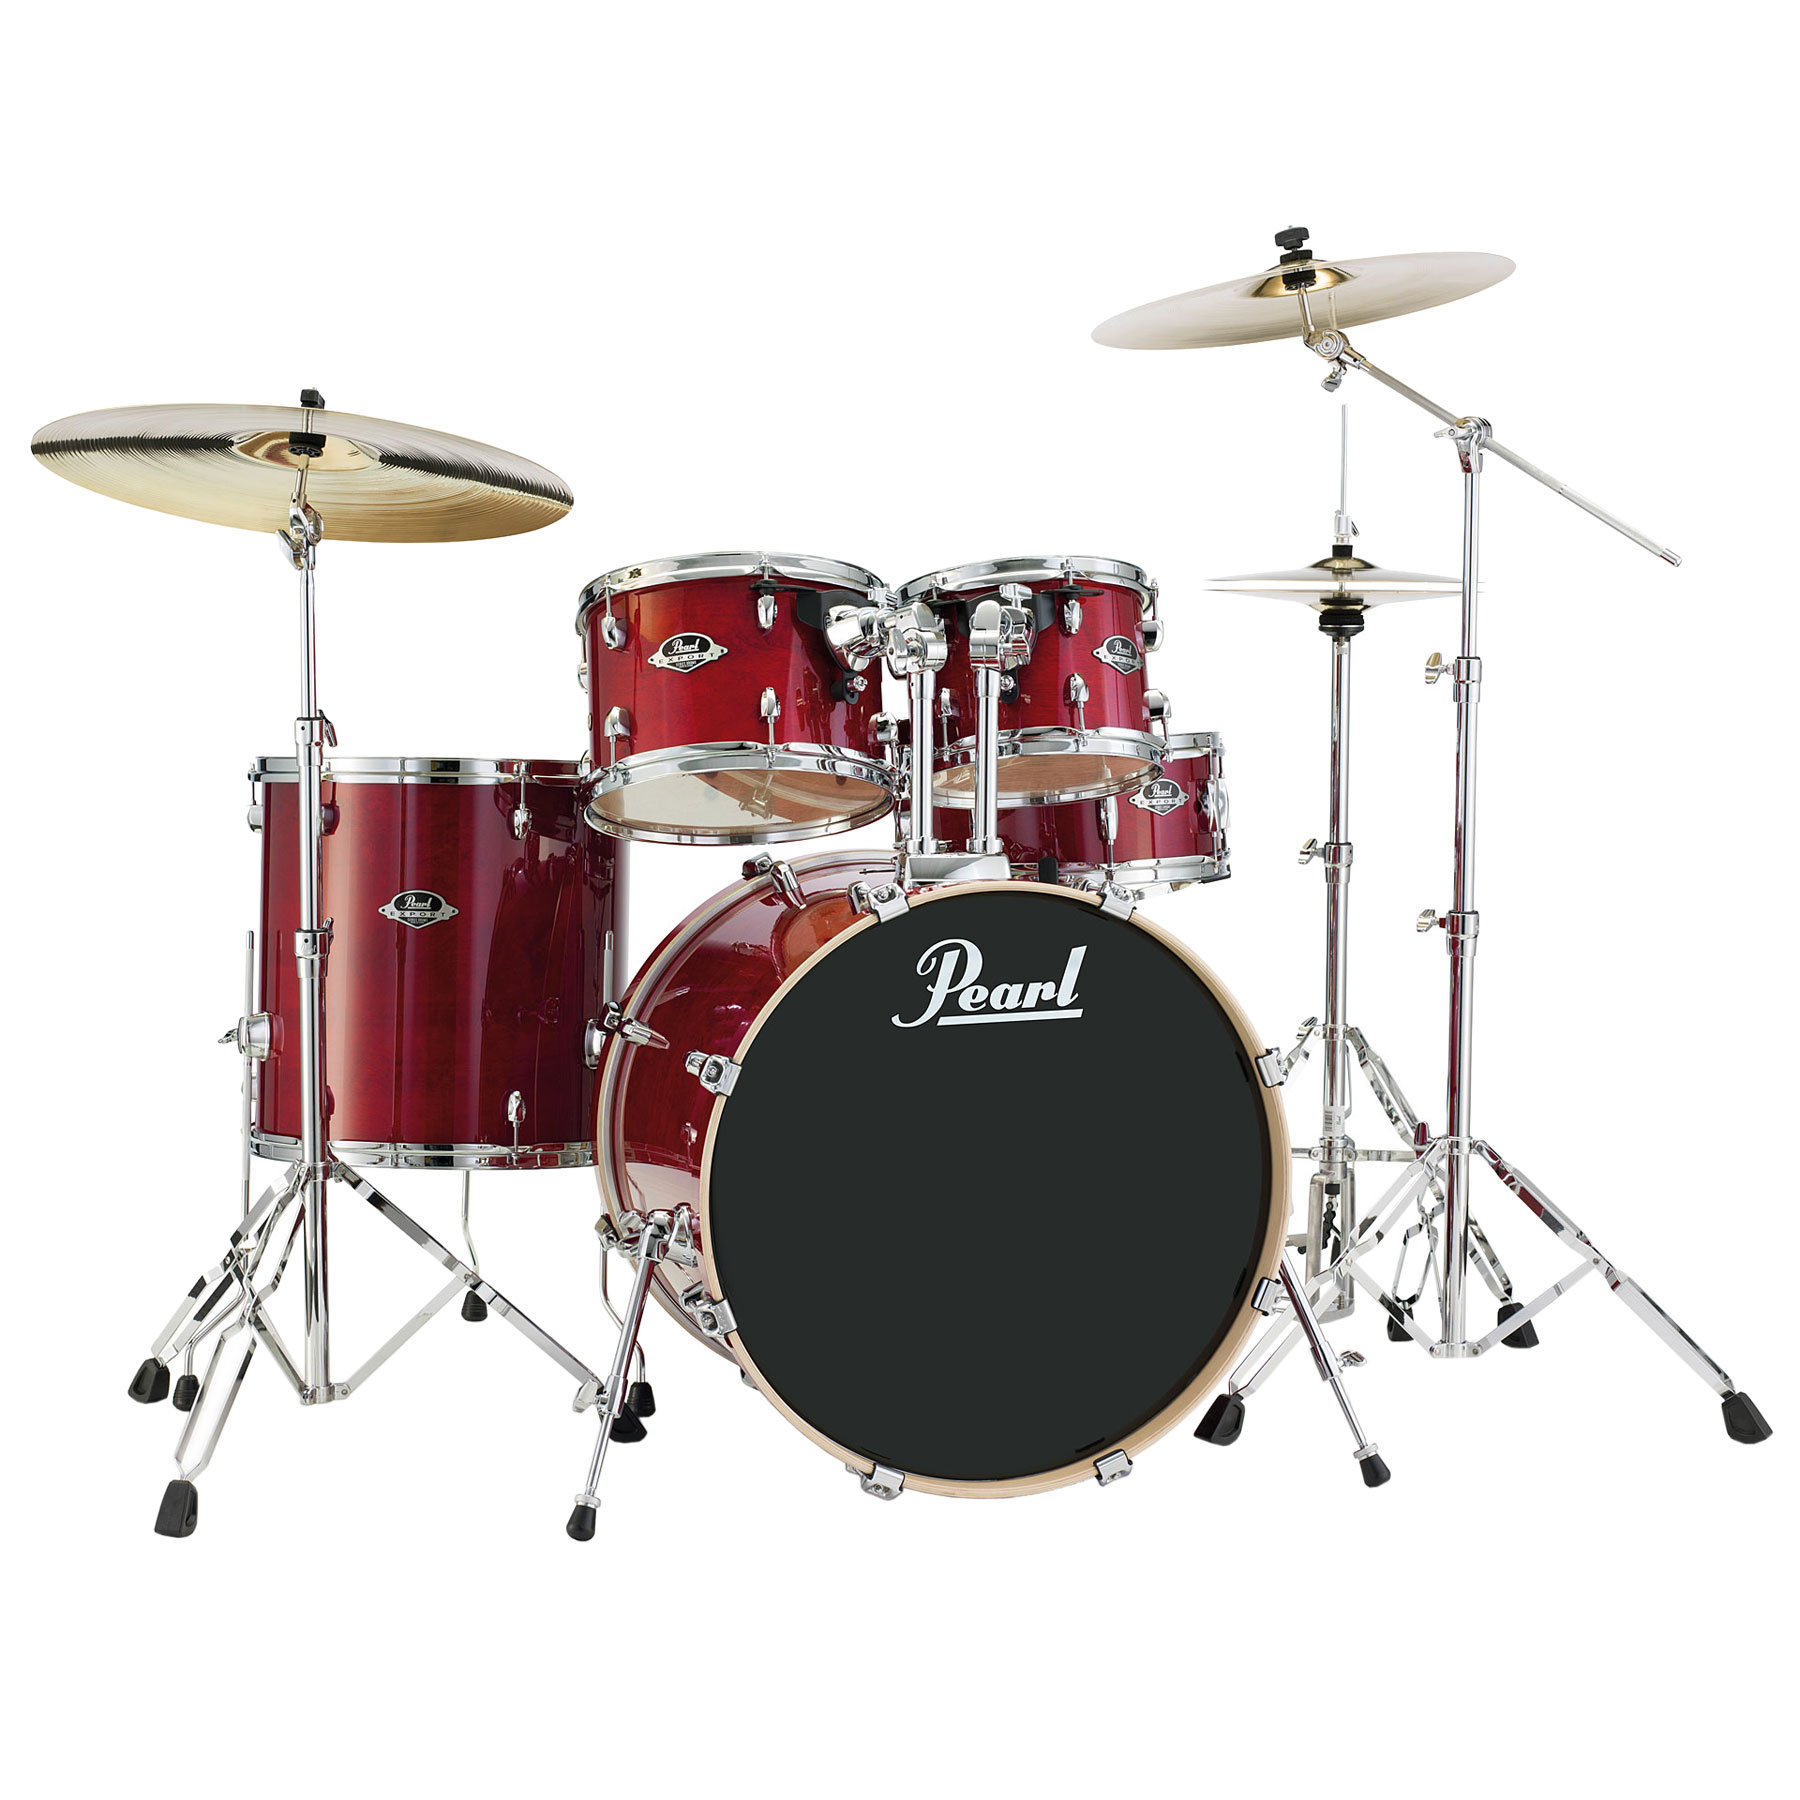 "Pearl EXL Export Lacquer 5-Piece Drum Set with Hardware (22"" Bass, 10/12/16"" Toms, 14"" Snare)"